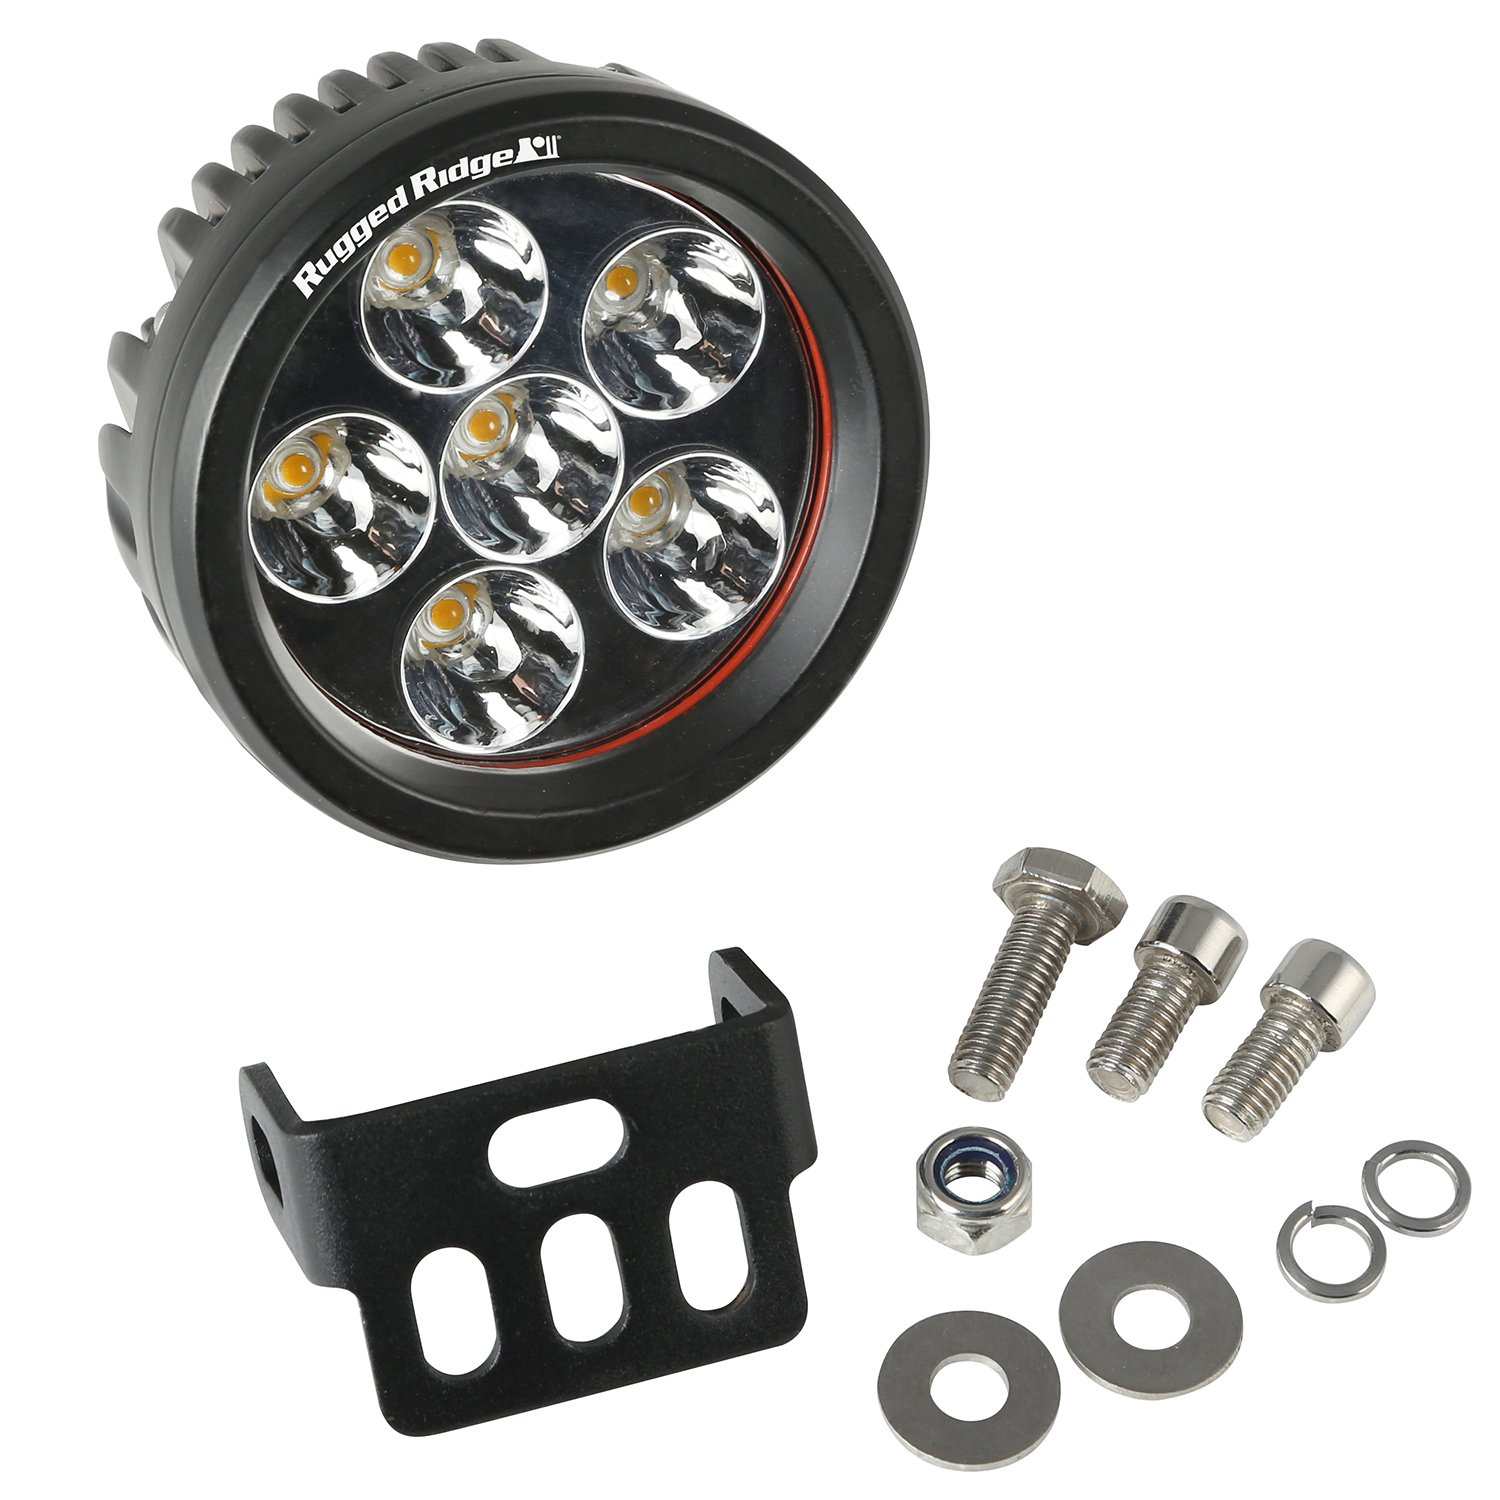 p motorcycles s kit piaa suzuki led hr for driving motorcycle light store dual lights lighting